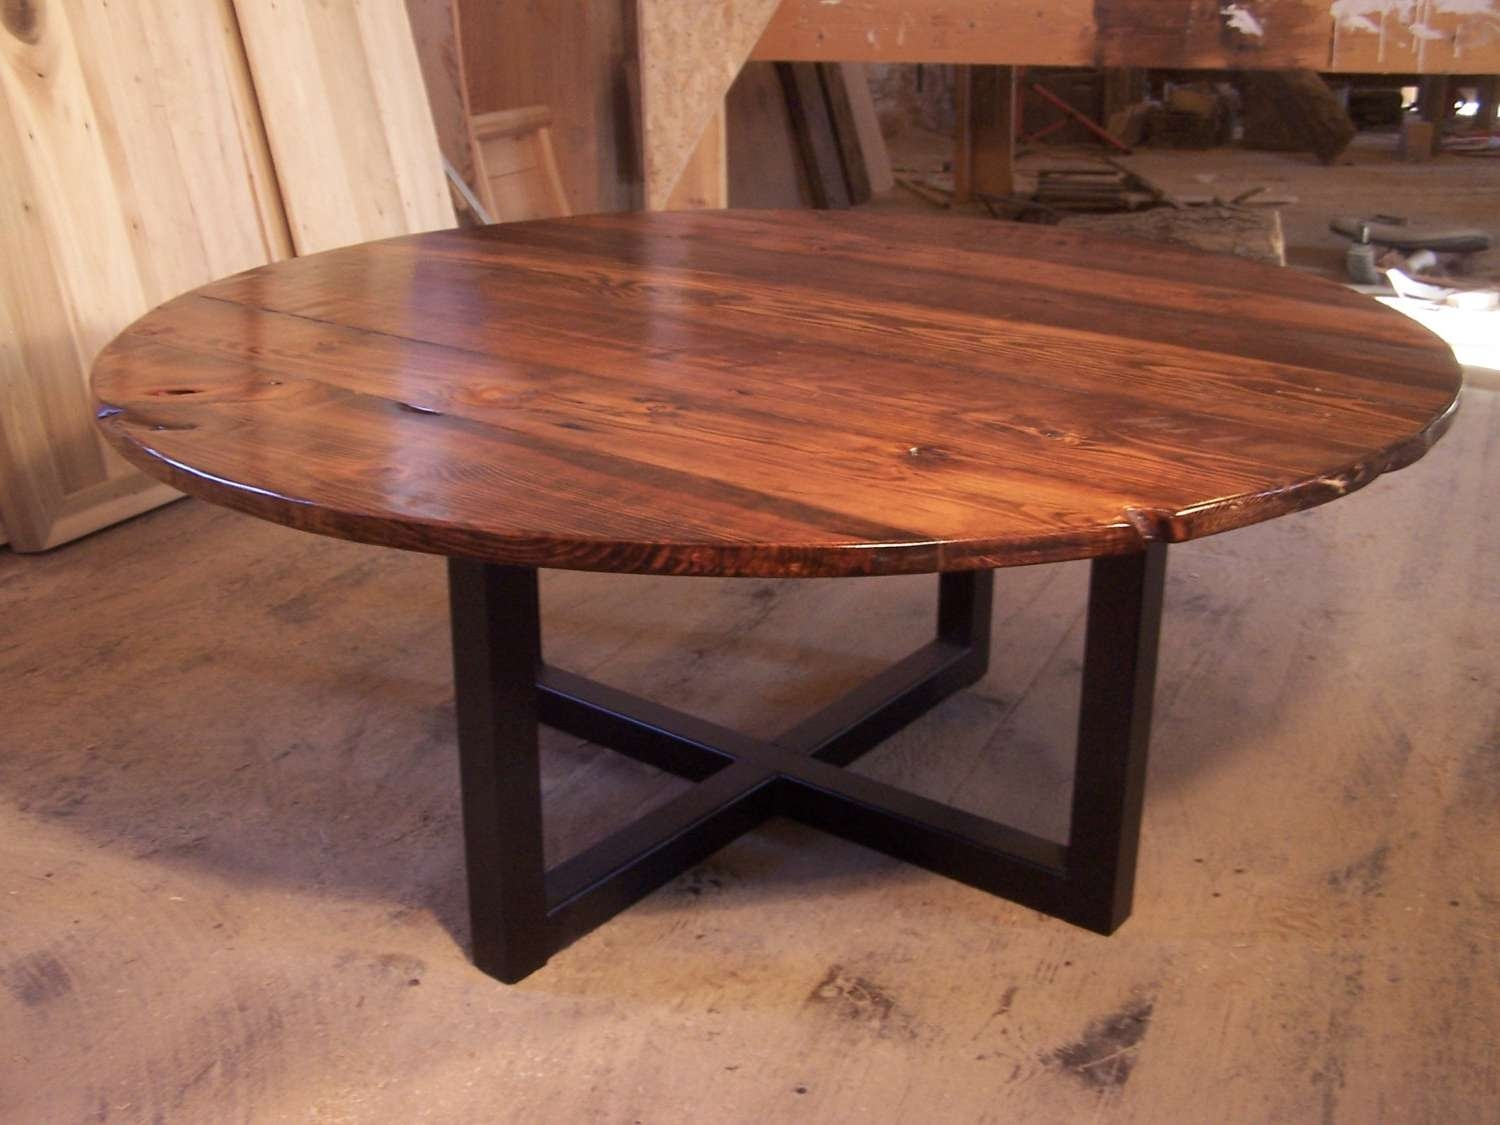 Showing Photos Of Industrial Round Coffee Tables View 6